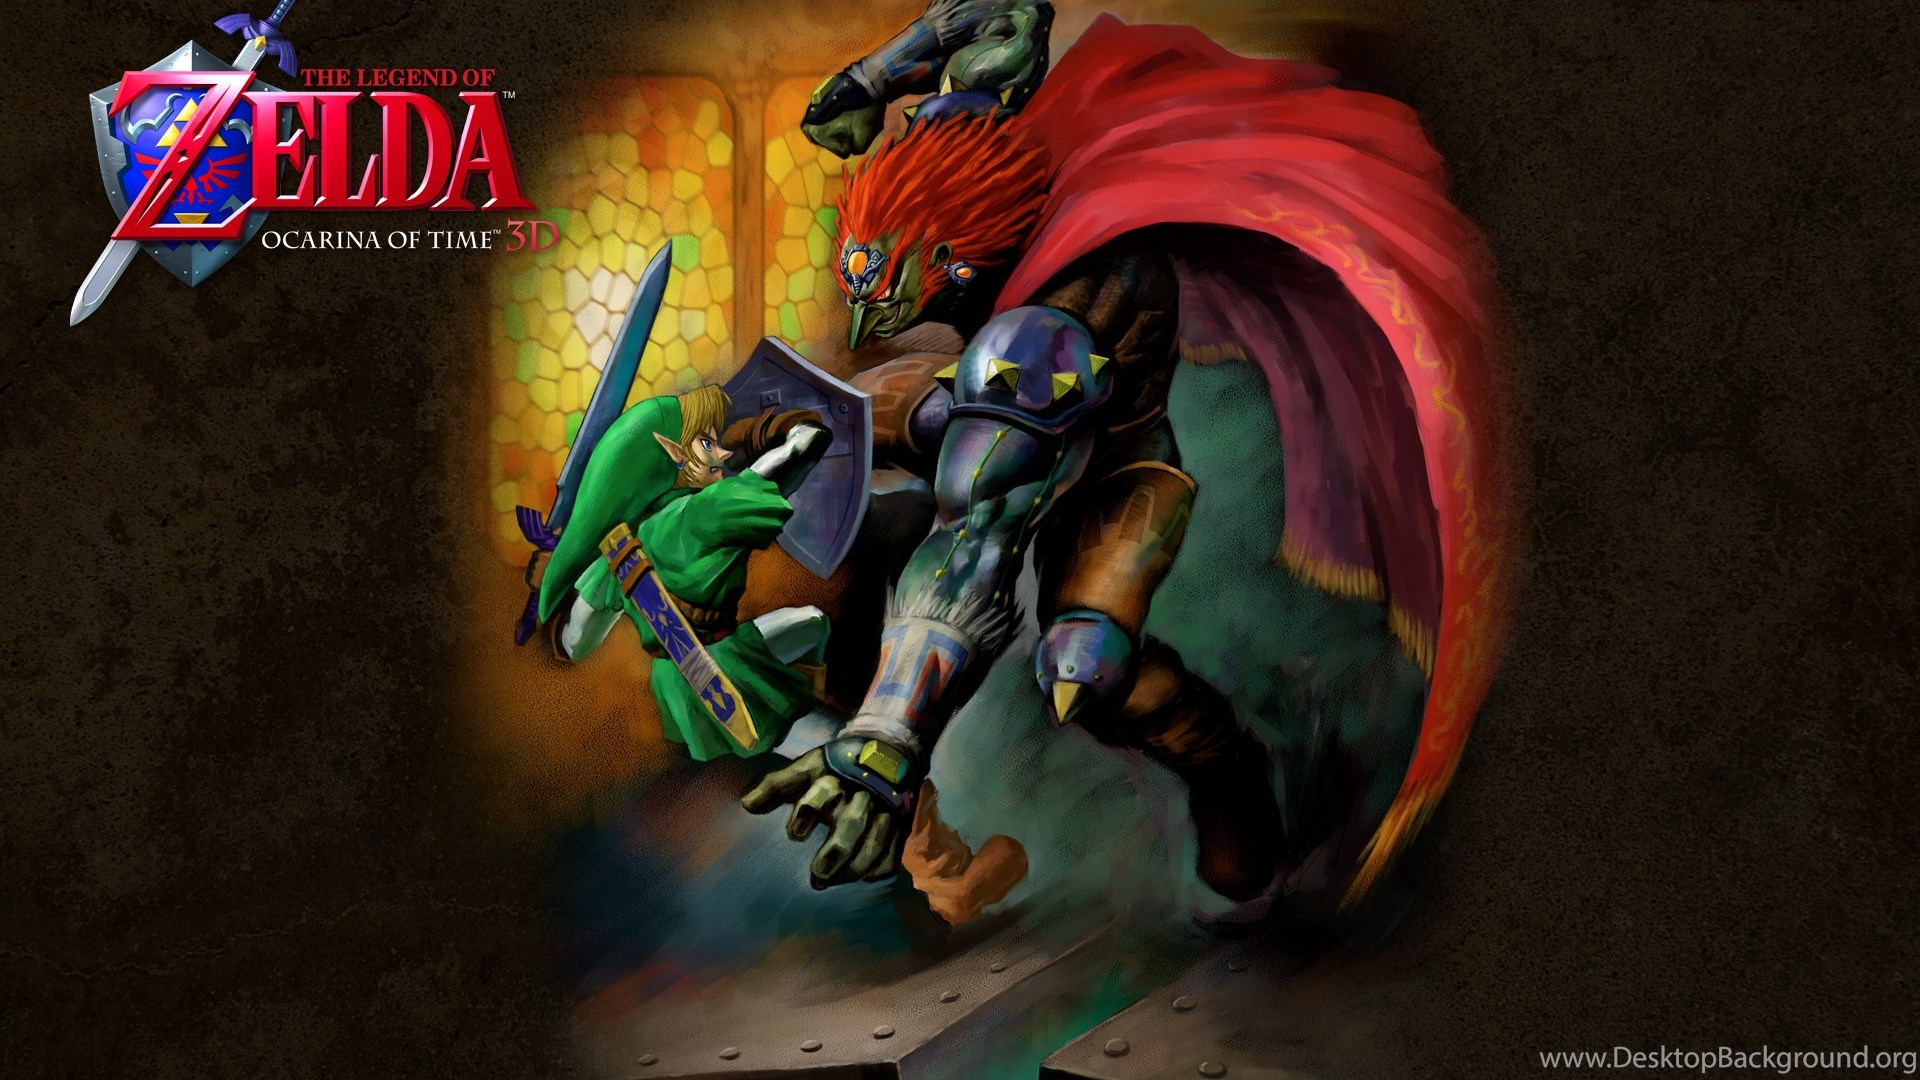 Ocarina Of Time 3d Wallpapers Wallpapers Zone Desktop Background